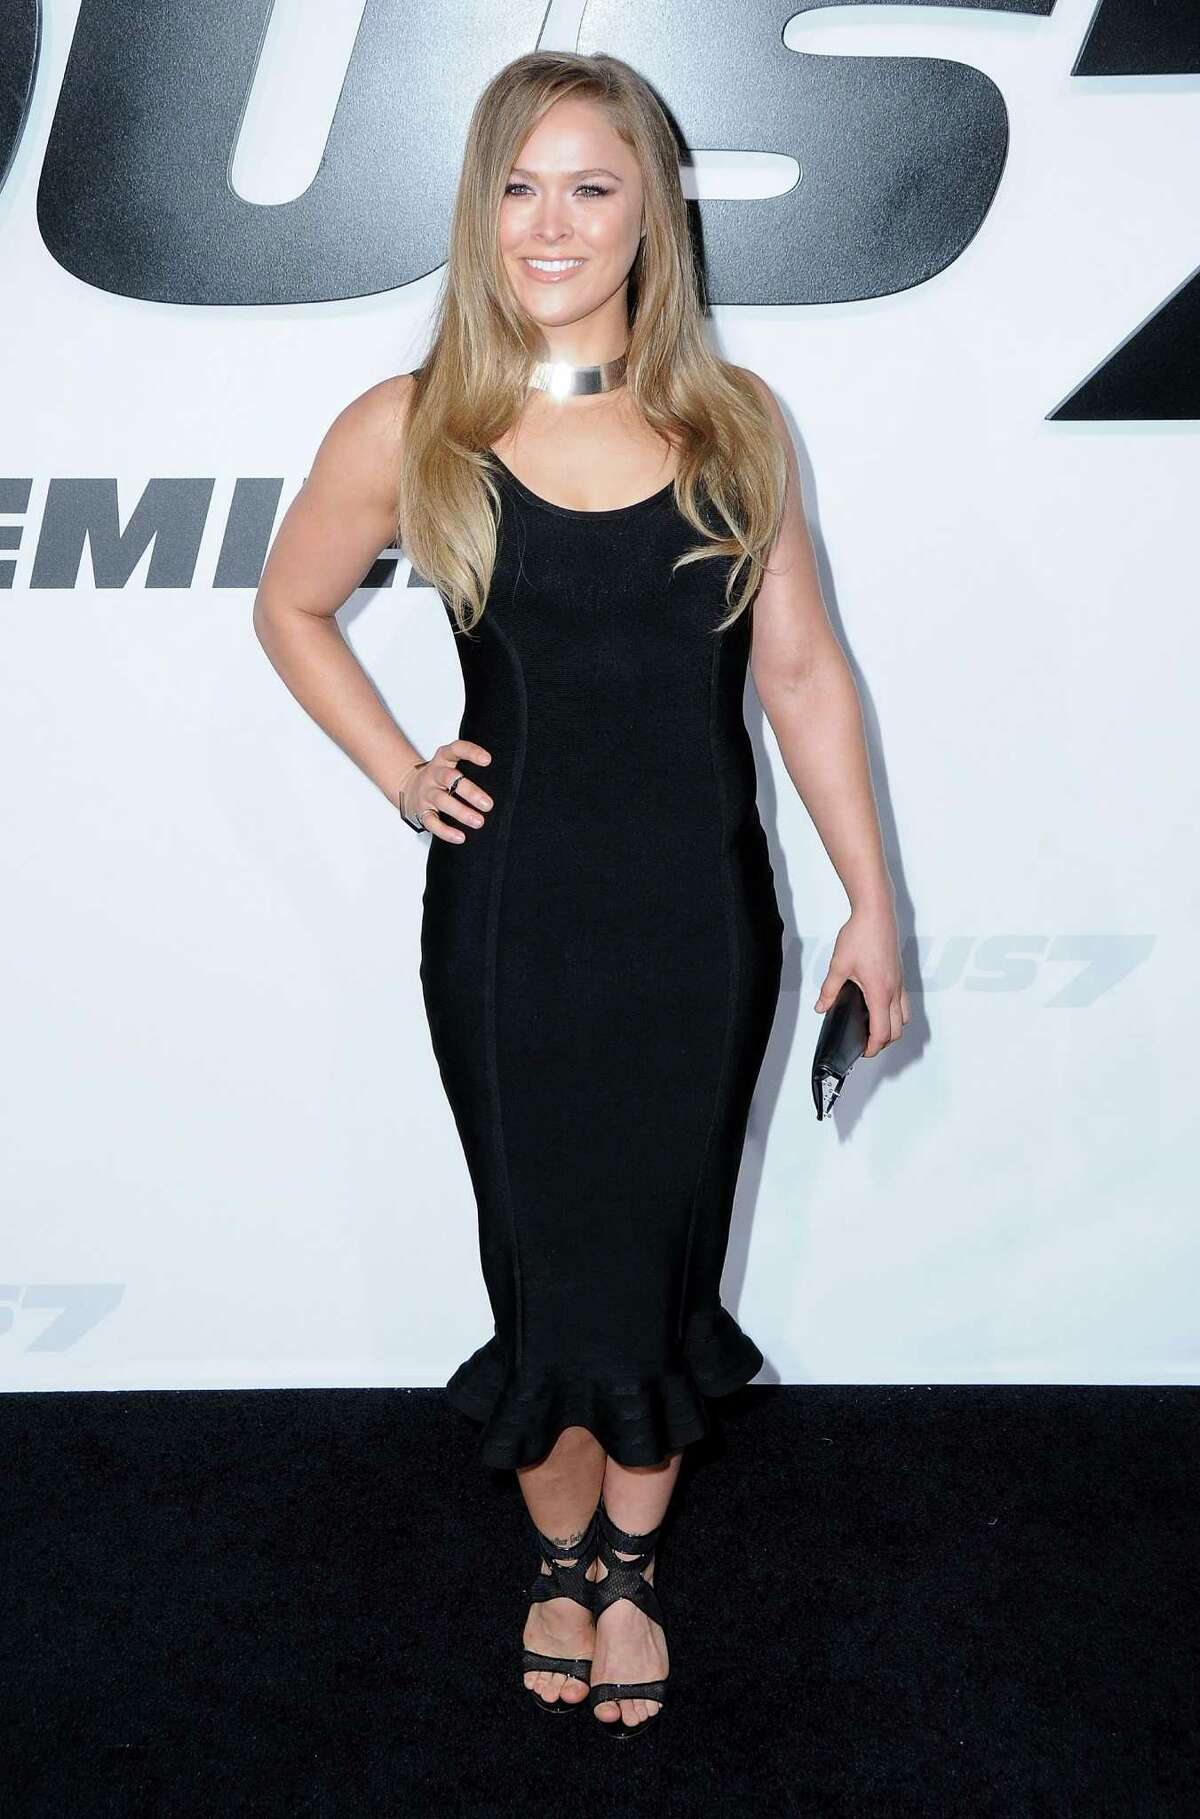 HOLLYWOOD, CA - APRIL 01: Ronda Rousey arrives at the Los Angeles Premiere 'Furious 7' at TCL Chinese Theatre IMAX on April 1, 2015 in Hollywood, California. (Photo by Barry King/FilmMagic)